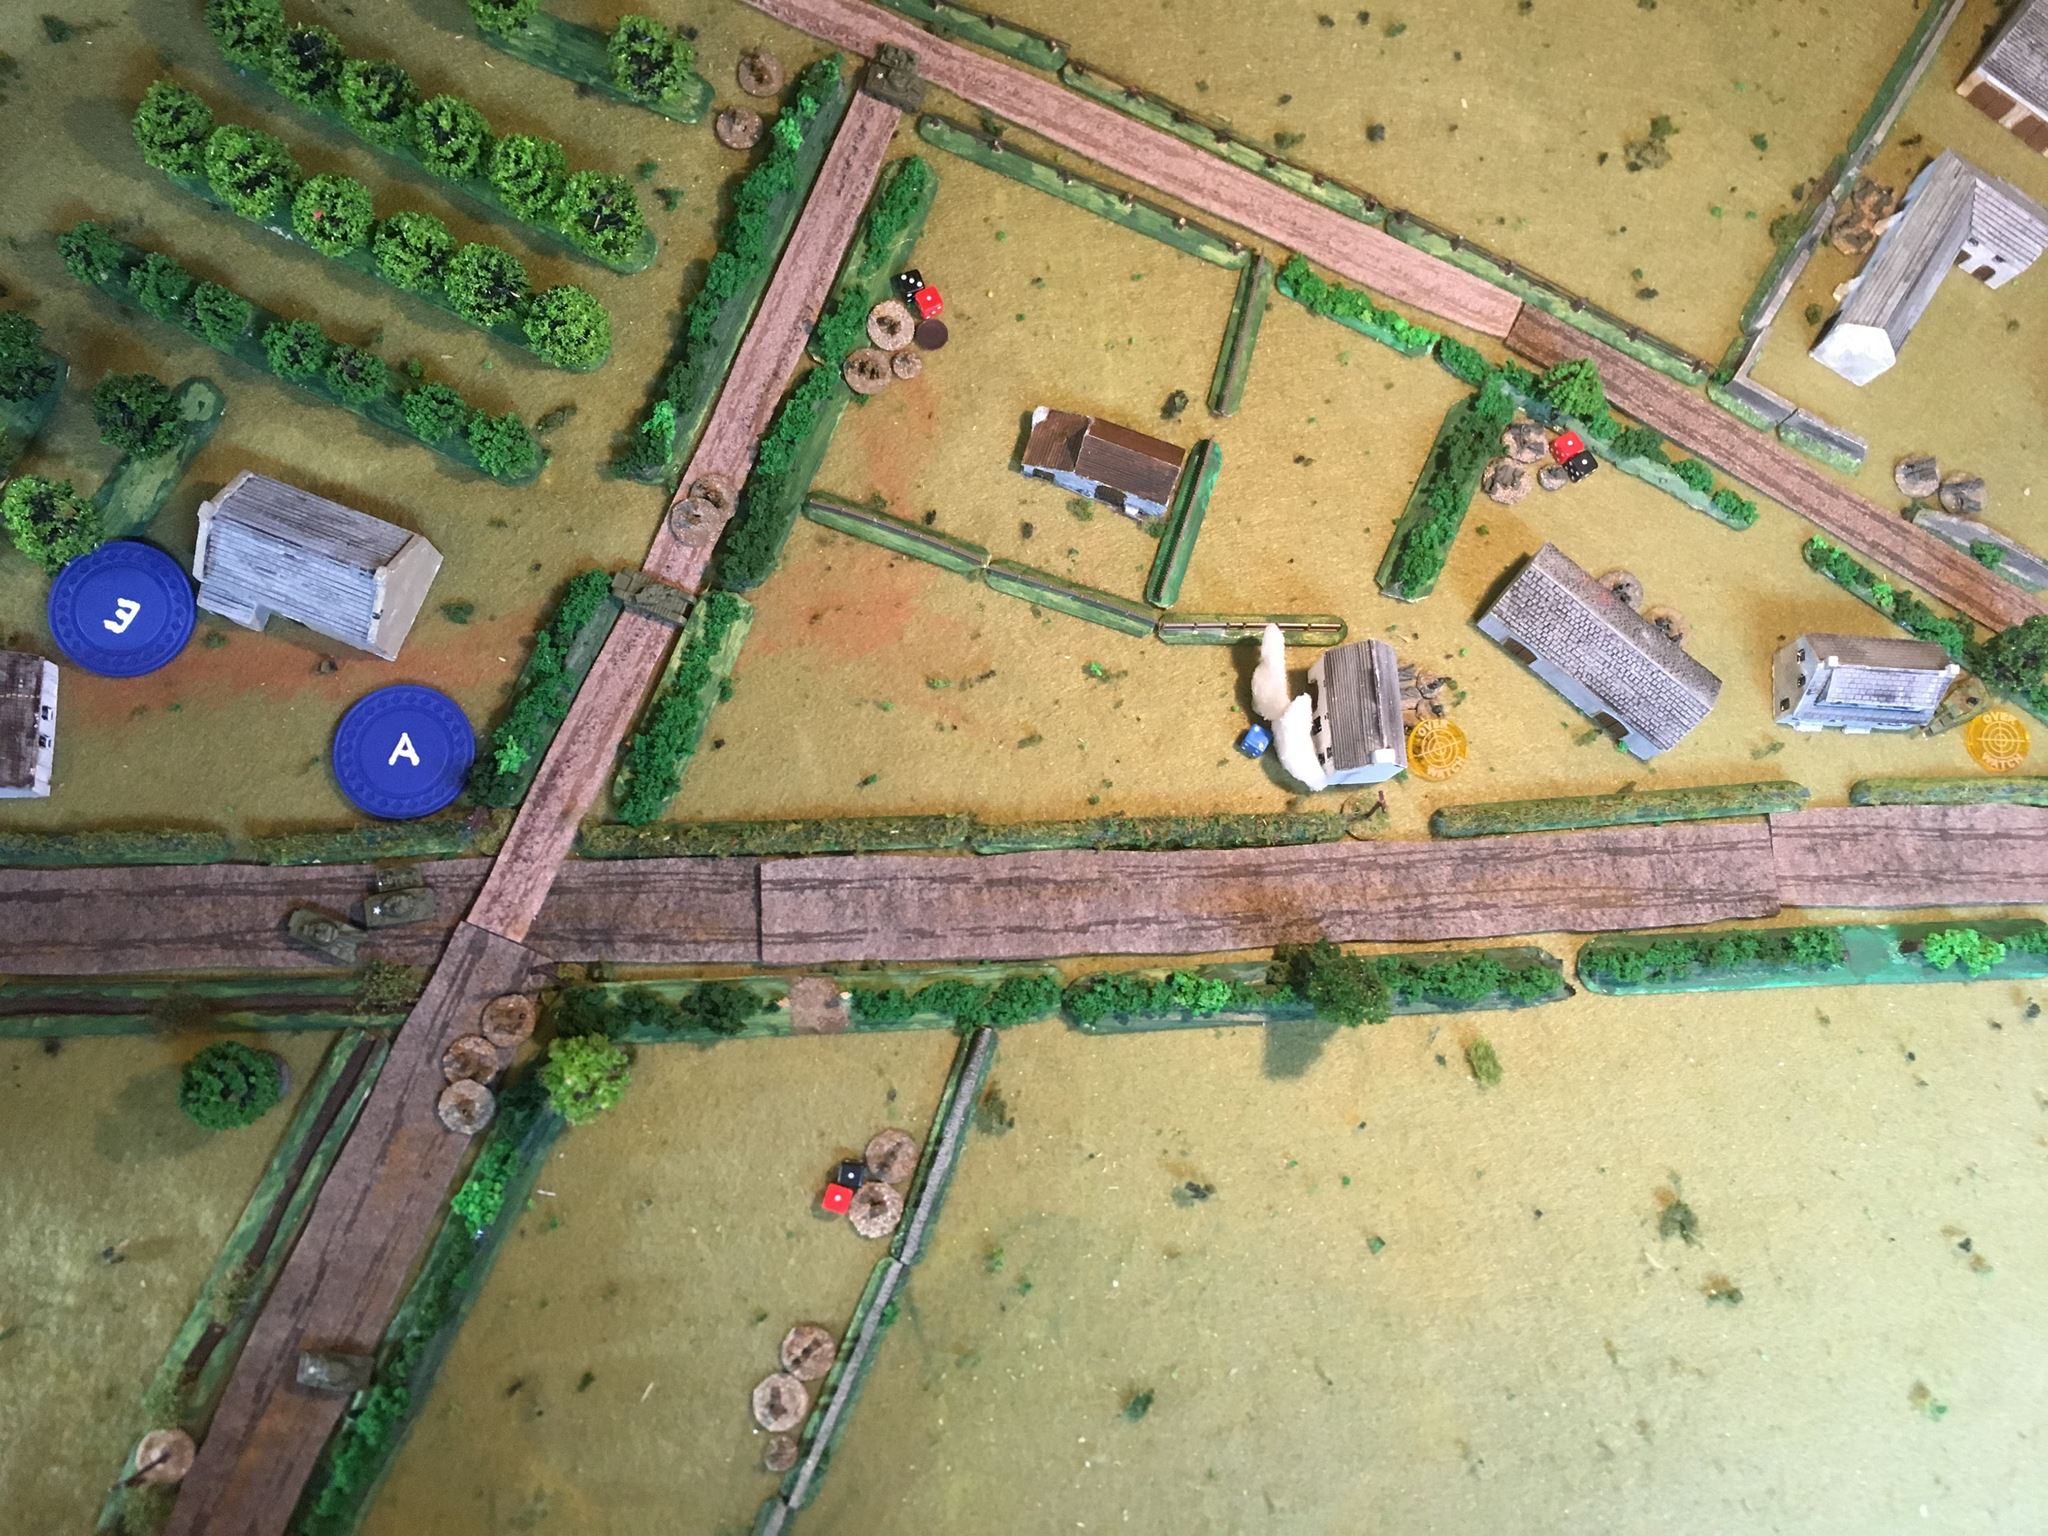 A section from No 1 platoon try and dash into the dead sniper's hiding place but get shot at by a Germans squad from No 2 Zug behind the thick hedge opposite.  Sections from No 3 platoon take fire as they shelter behind the wall.  In the centre, the British bring up their secret weapon - a Churchill AVRE - to demolish the German strong point.